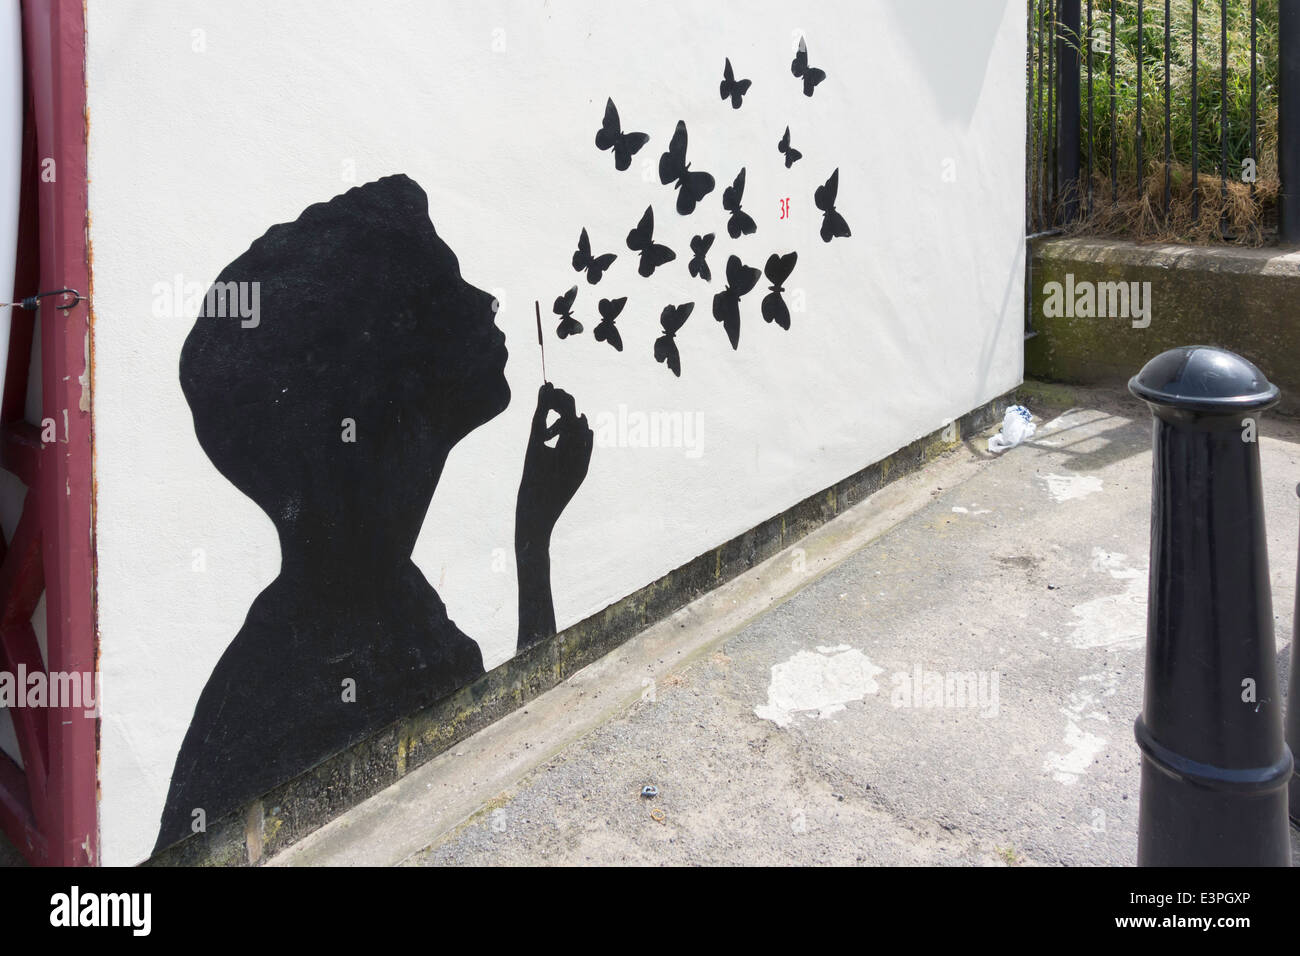 A Graffito of a boy blowing bubbles that are butterflies flying away - Stock Image